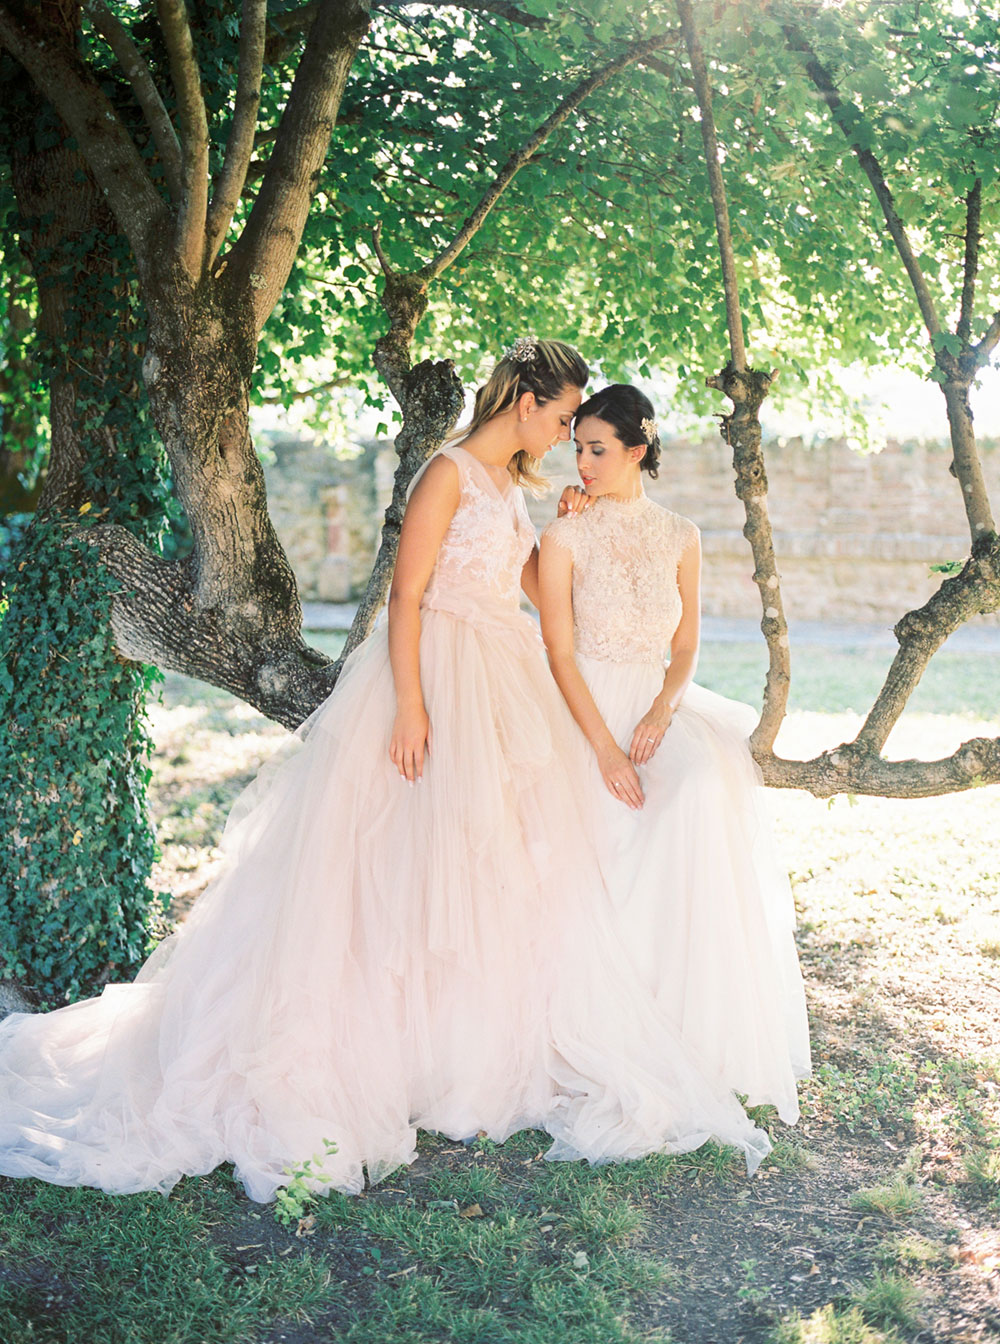 Linari-Tuscany-Elopement-Courtney-Michaela-273